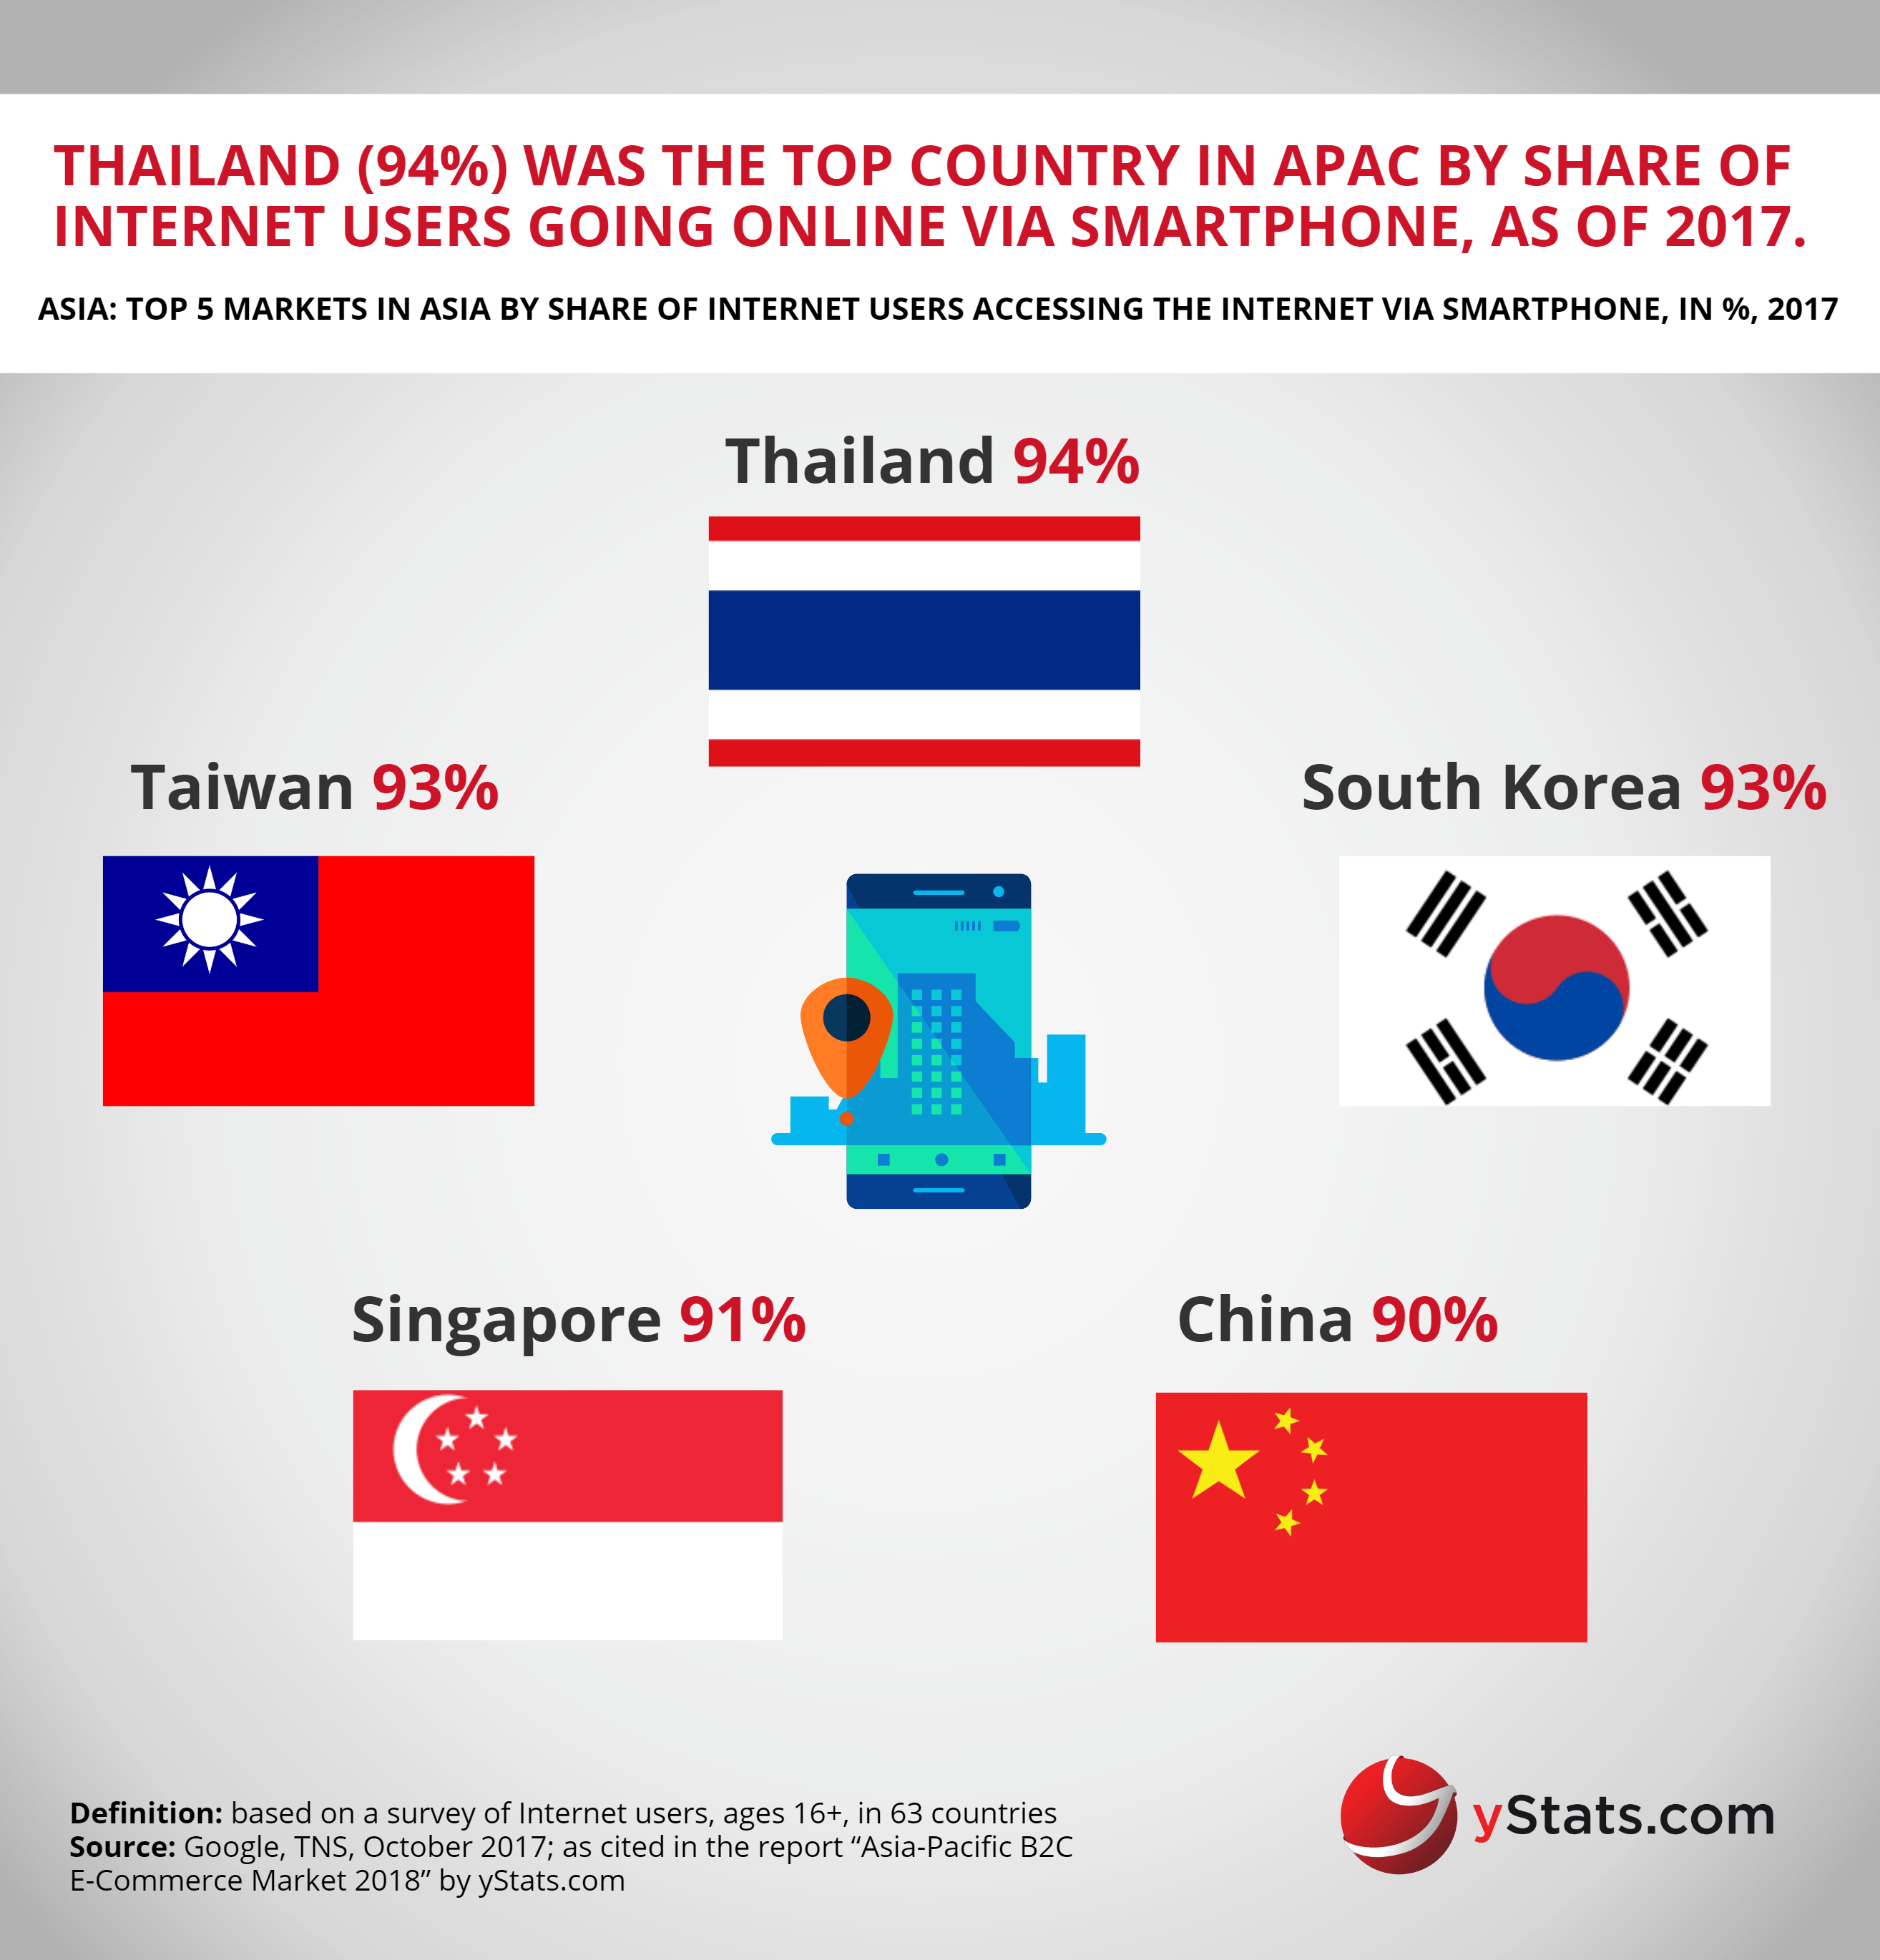 share users accessing internet via smartphone Asia